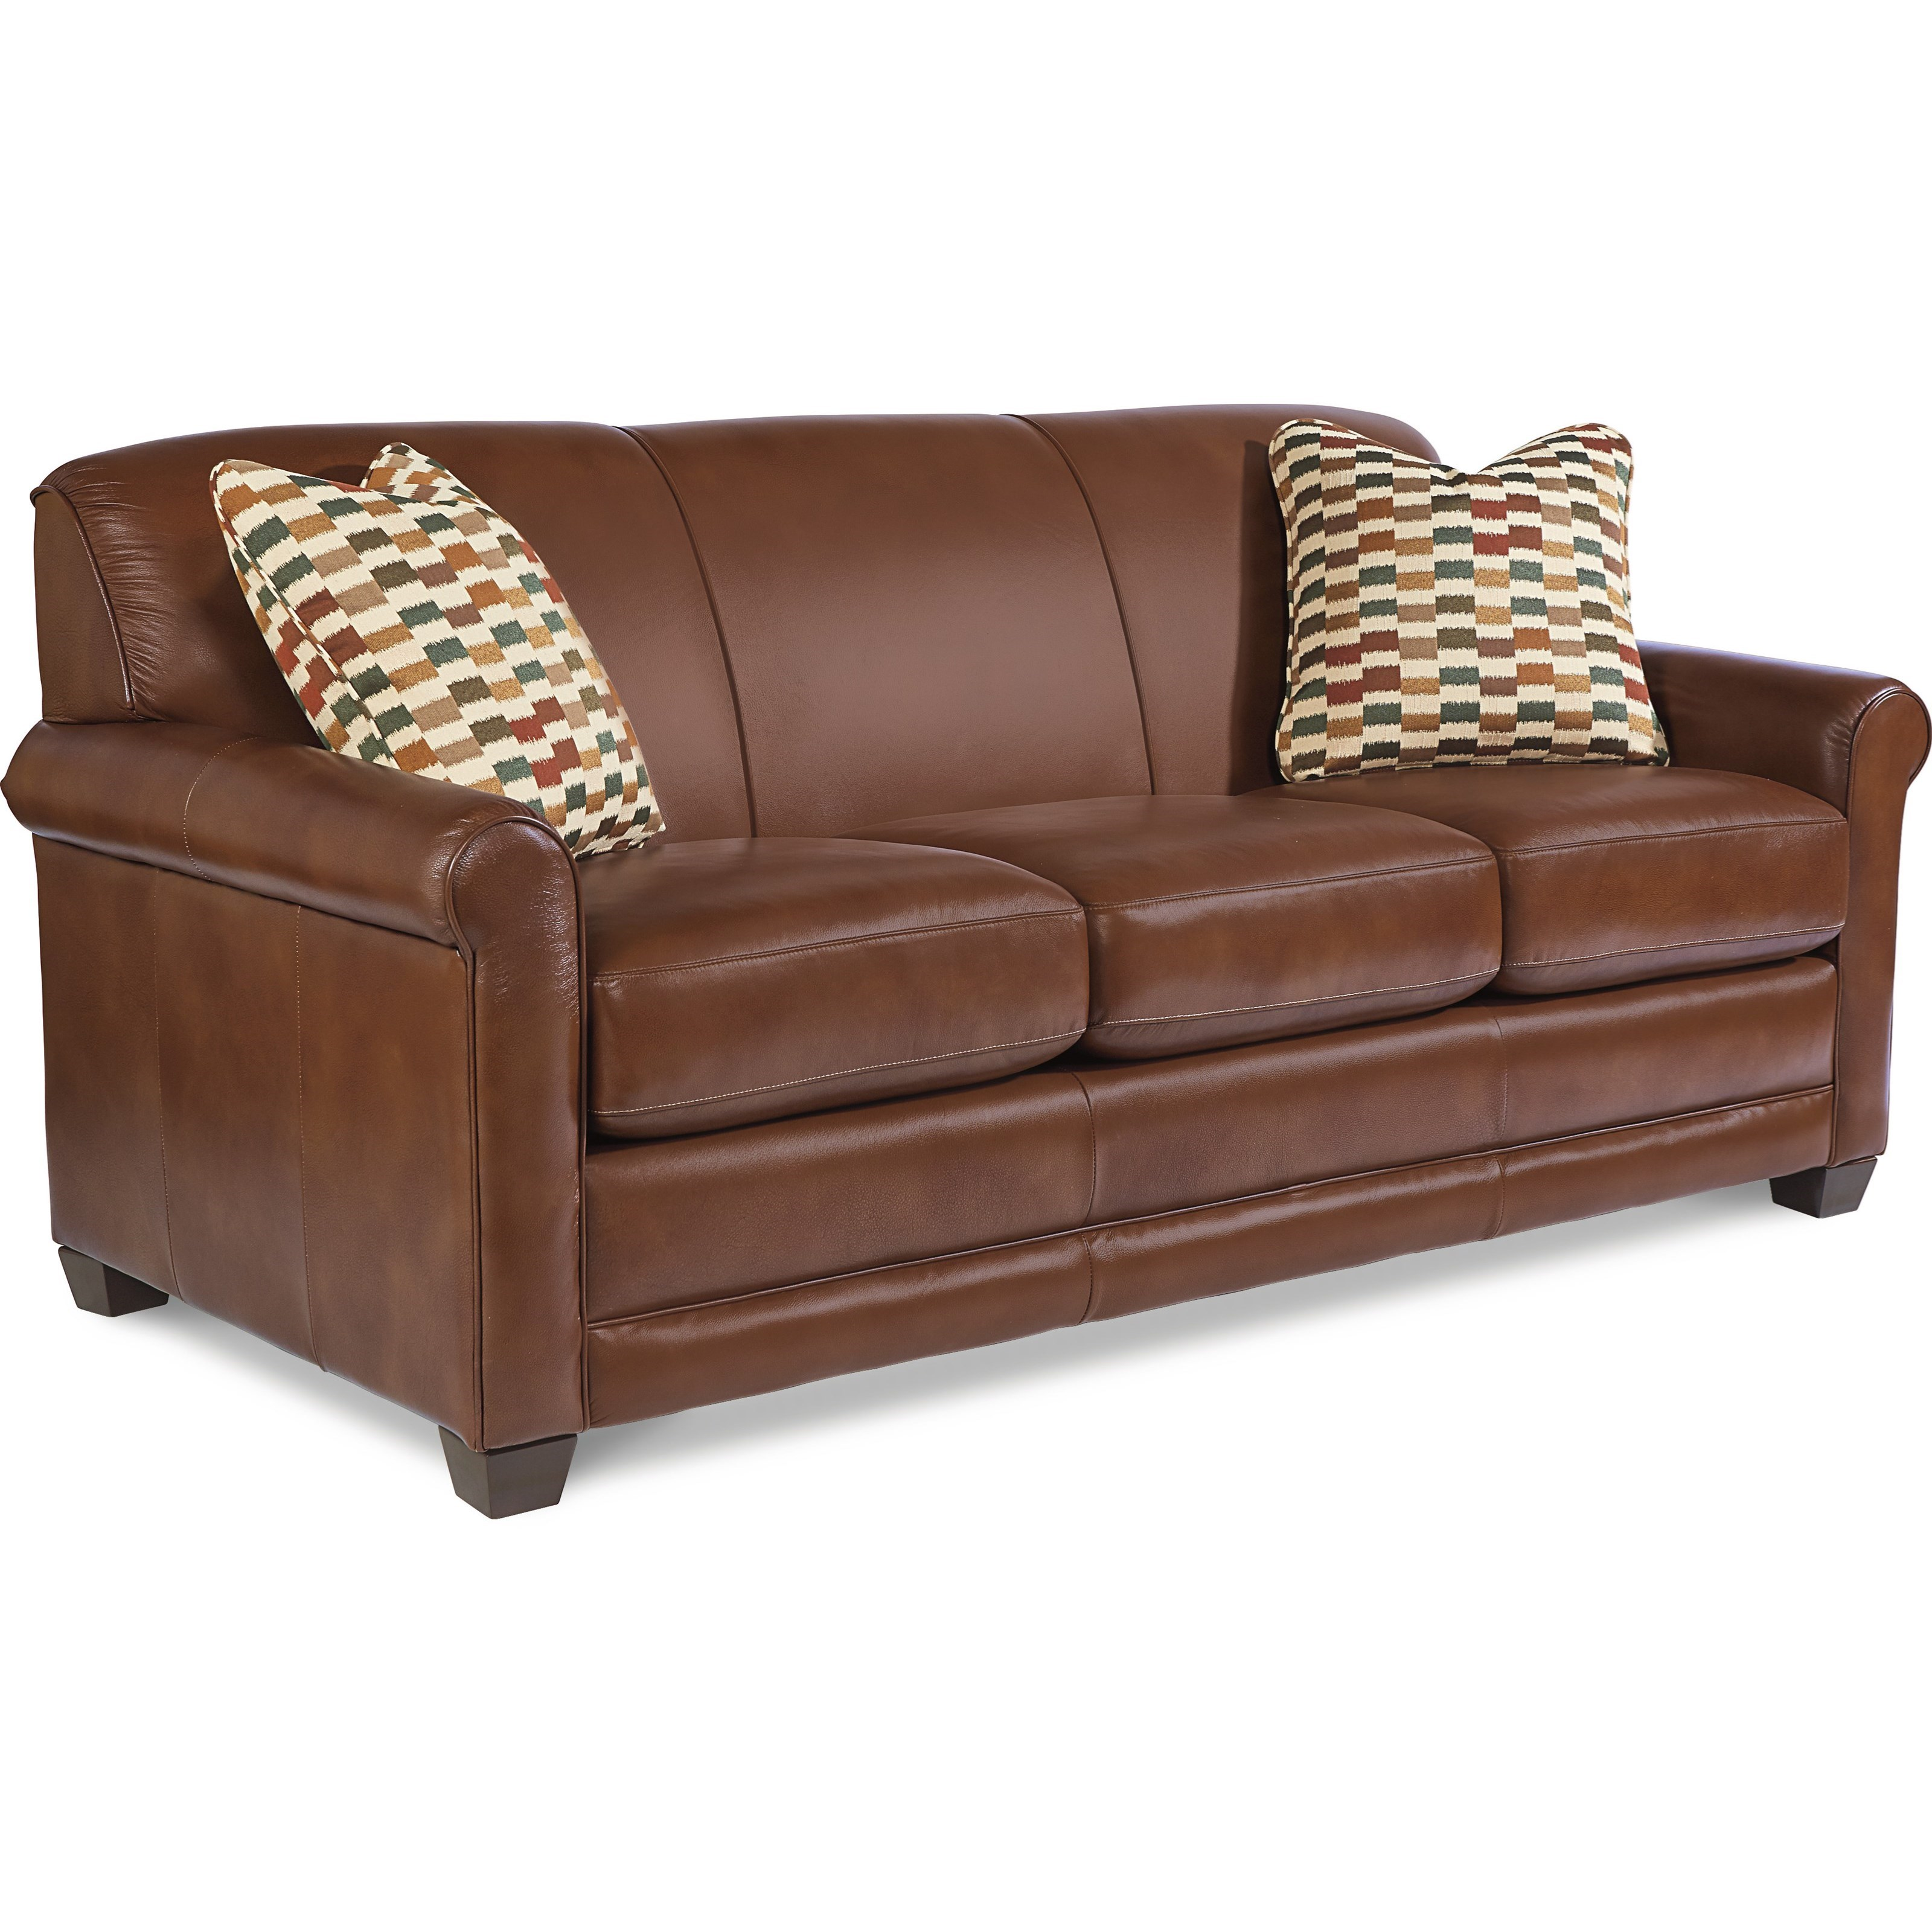 Casual Sleeper Sofa With Premier Comfortcore Seat Cushions